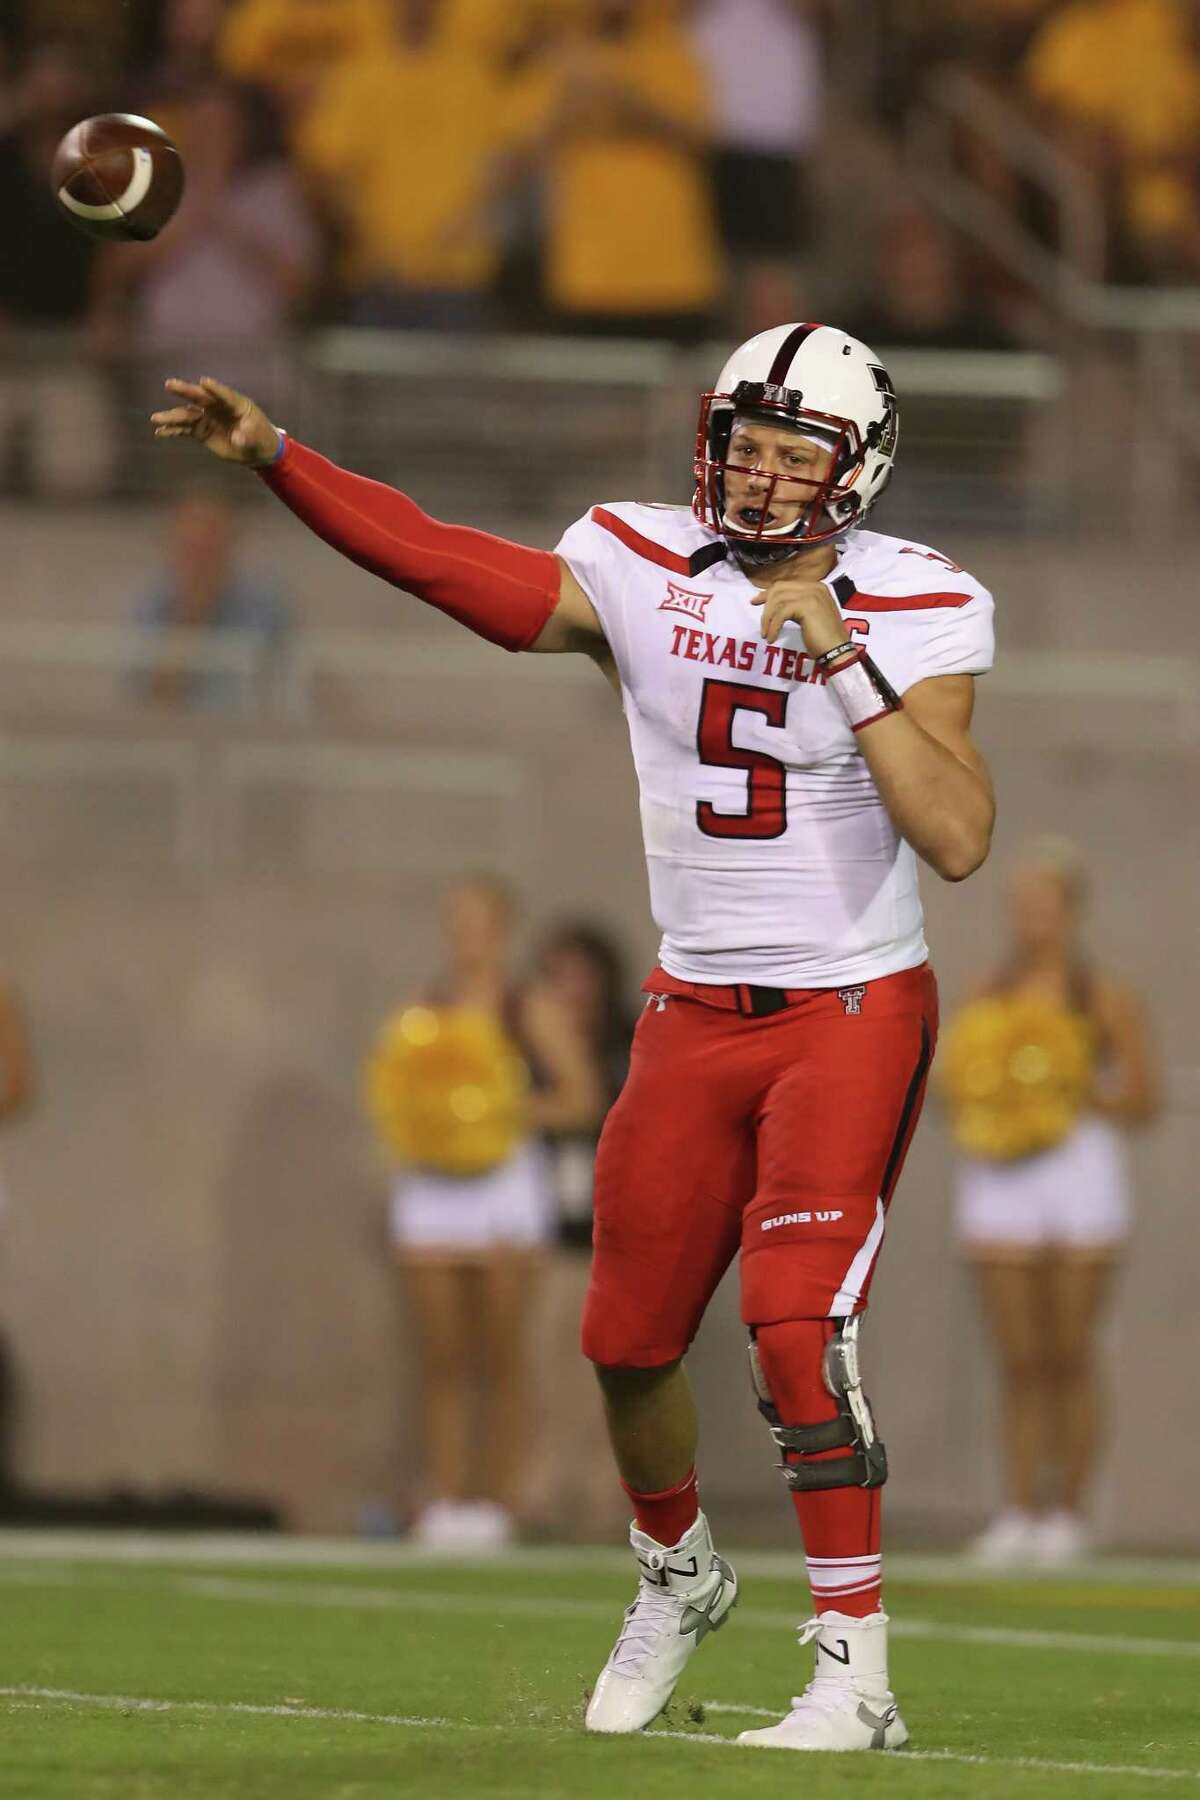 TEMPE, AZ - SEPTEMBER 10: Quarterback Patrick Mahomes II #5 of the Texas Tech Red Raiders throws a pass during the second half of the college football game against the Arizona State Sun Devils at Sun Devil Stadium on September 10, 2015 in Tempe, Arizona.